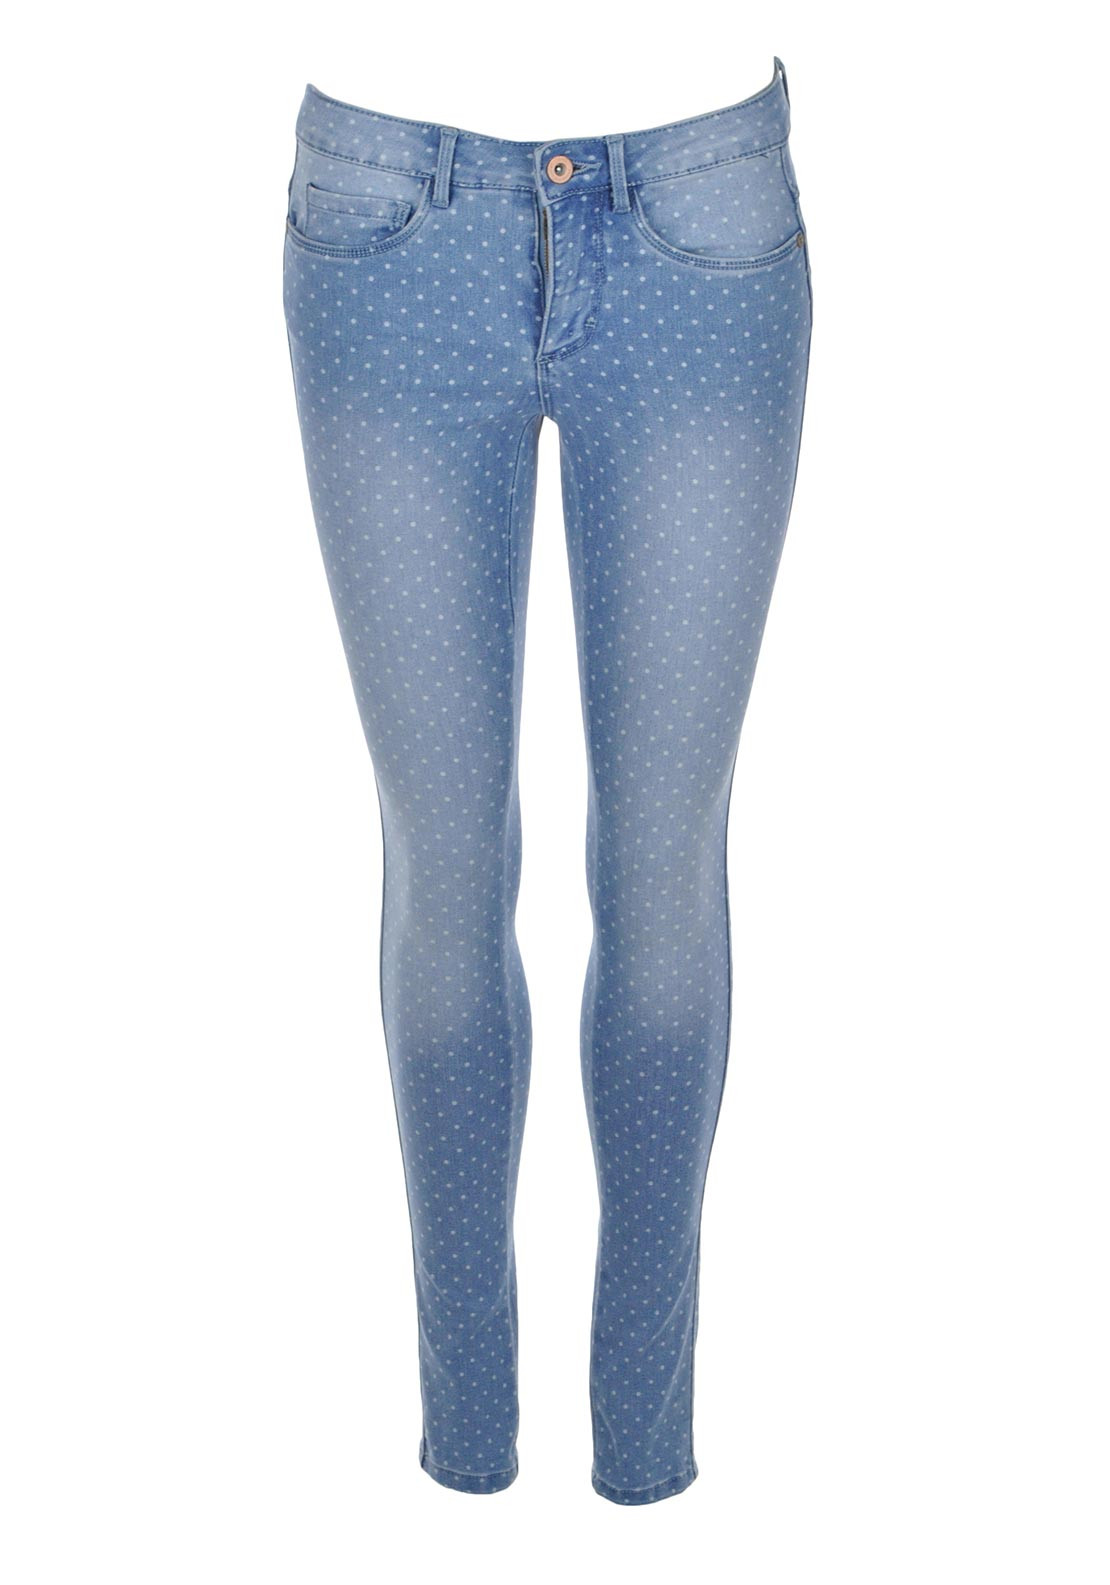 Only Skinny Regular Polka Dot Jeans, Light Blue Denim